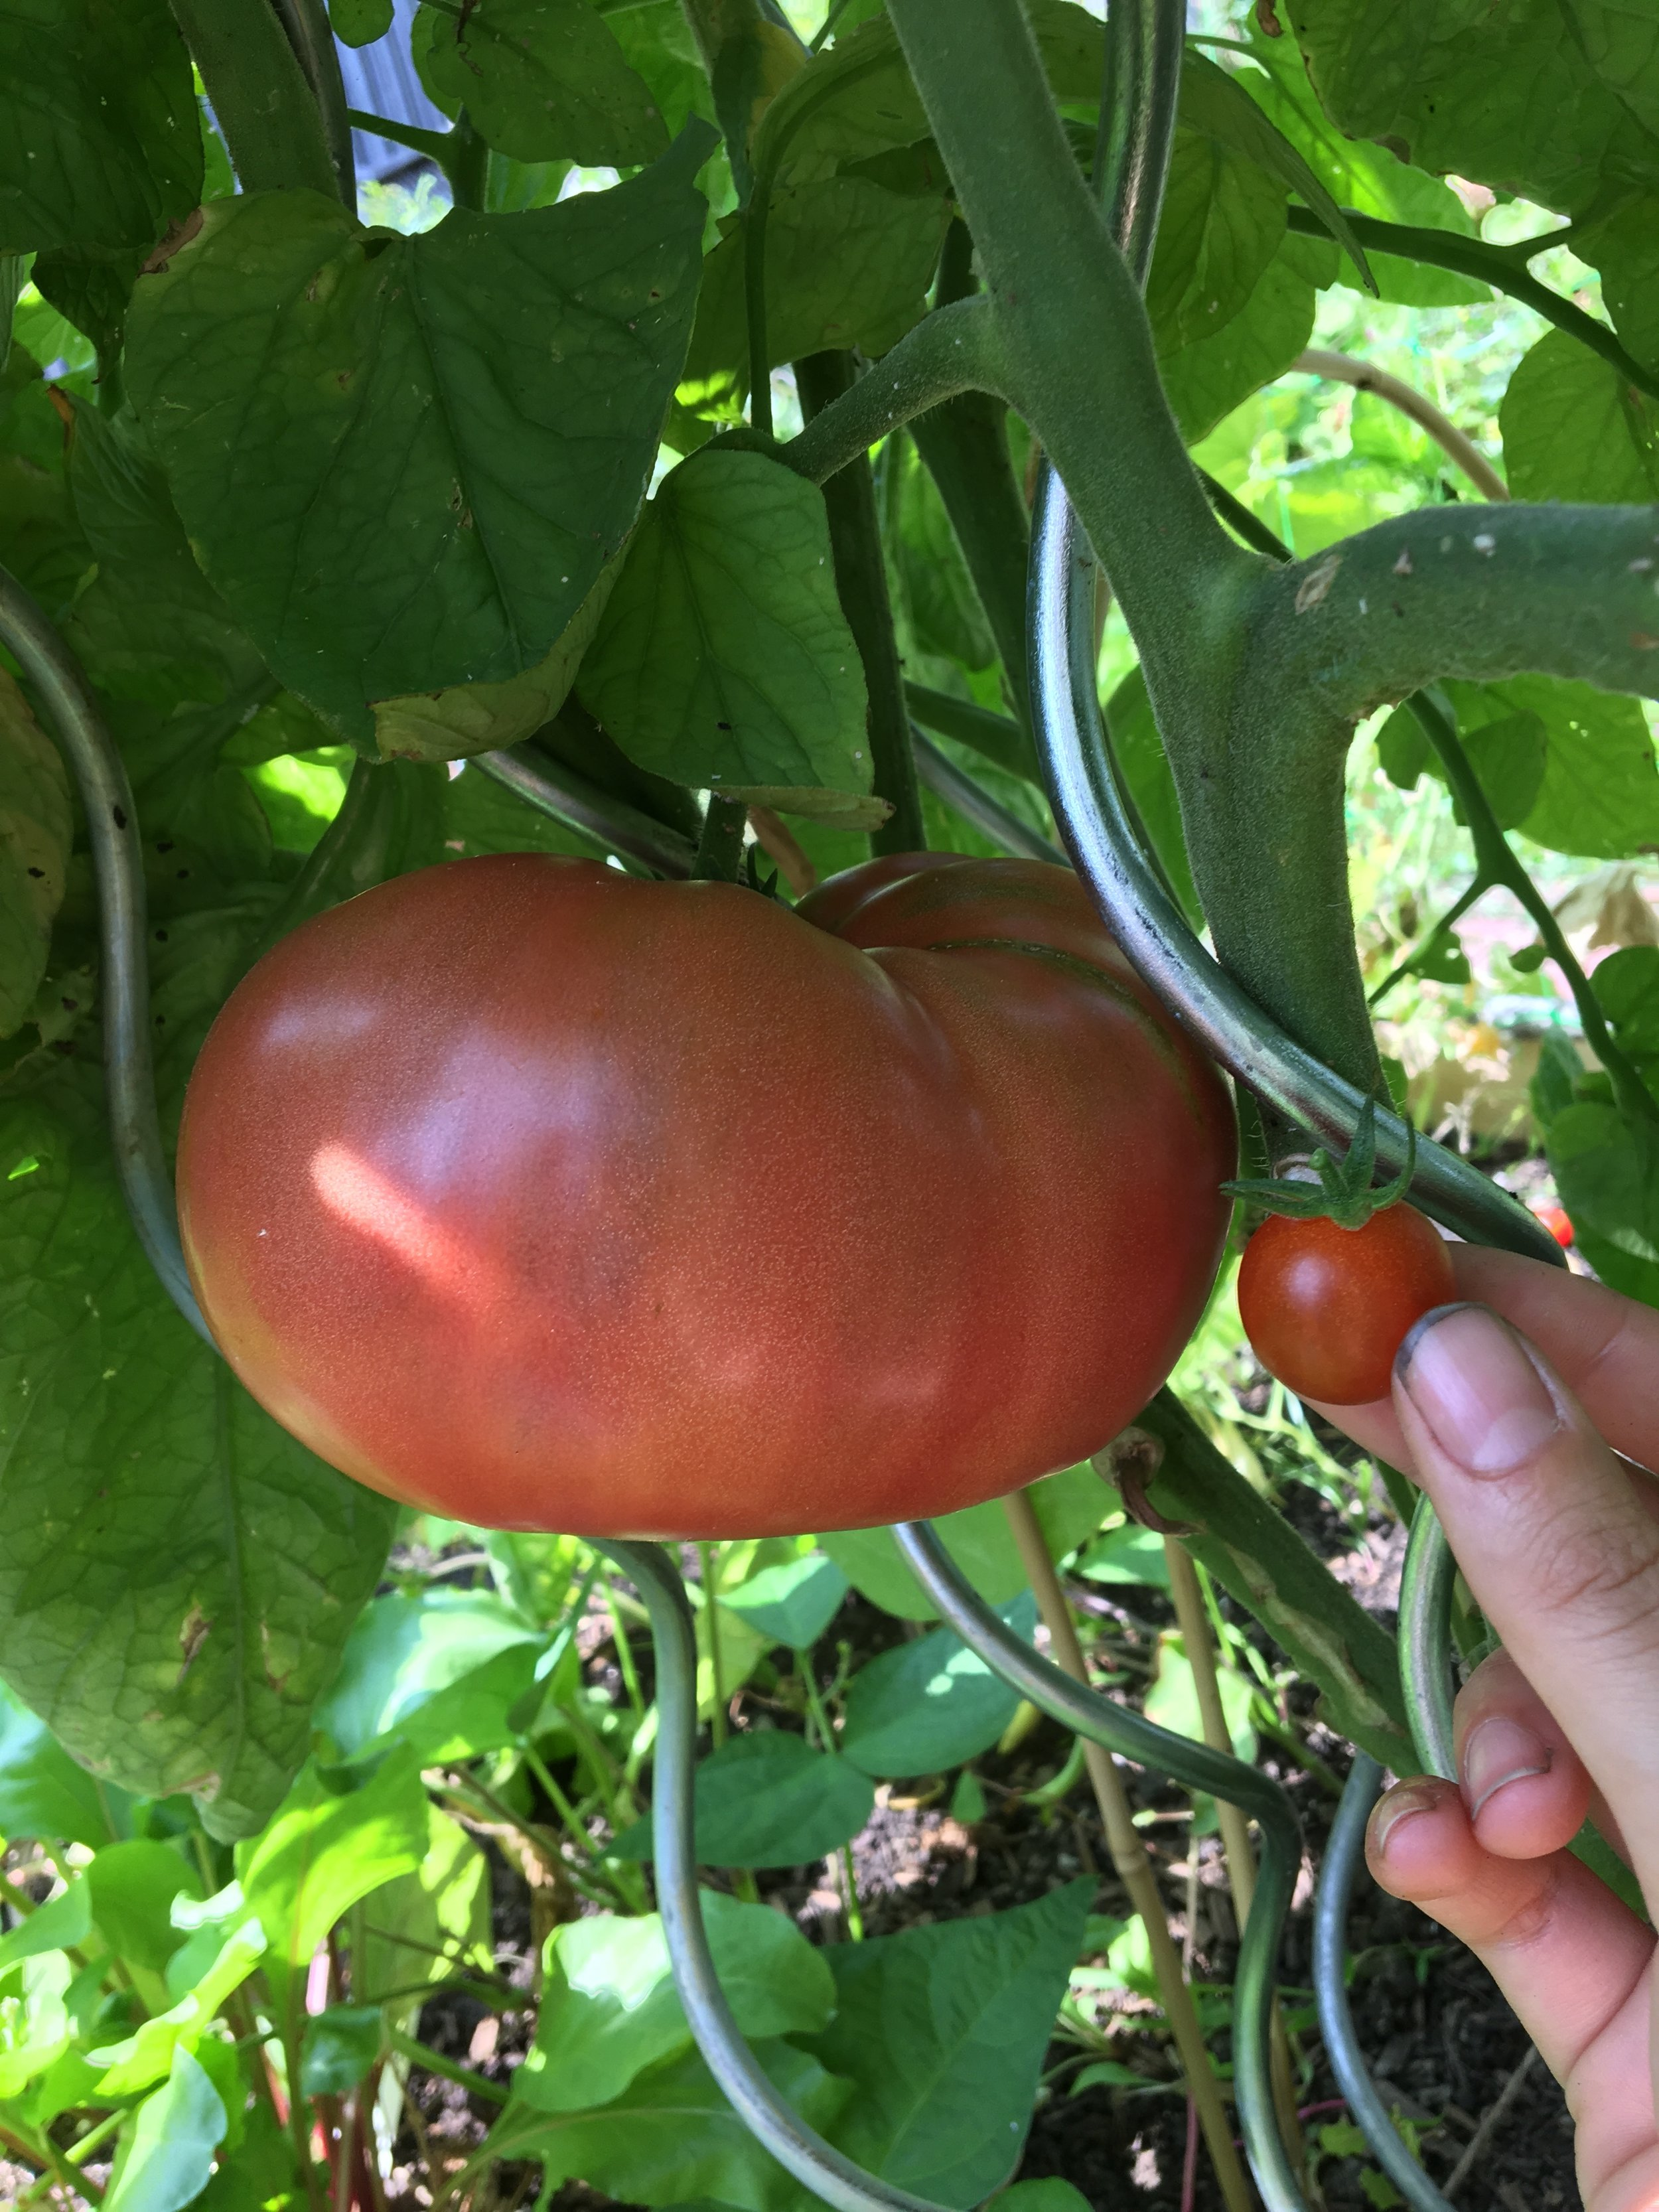 BIG or small, there's a tomato for all!